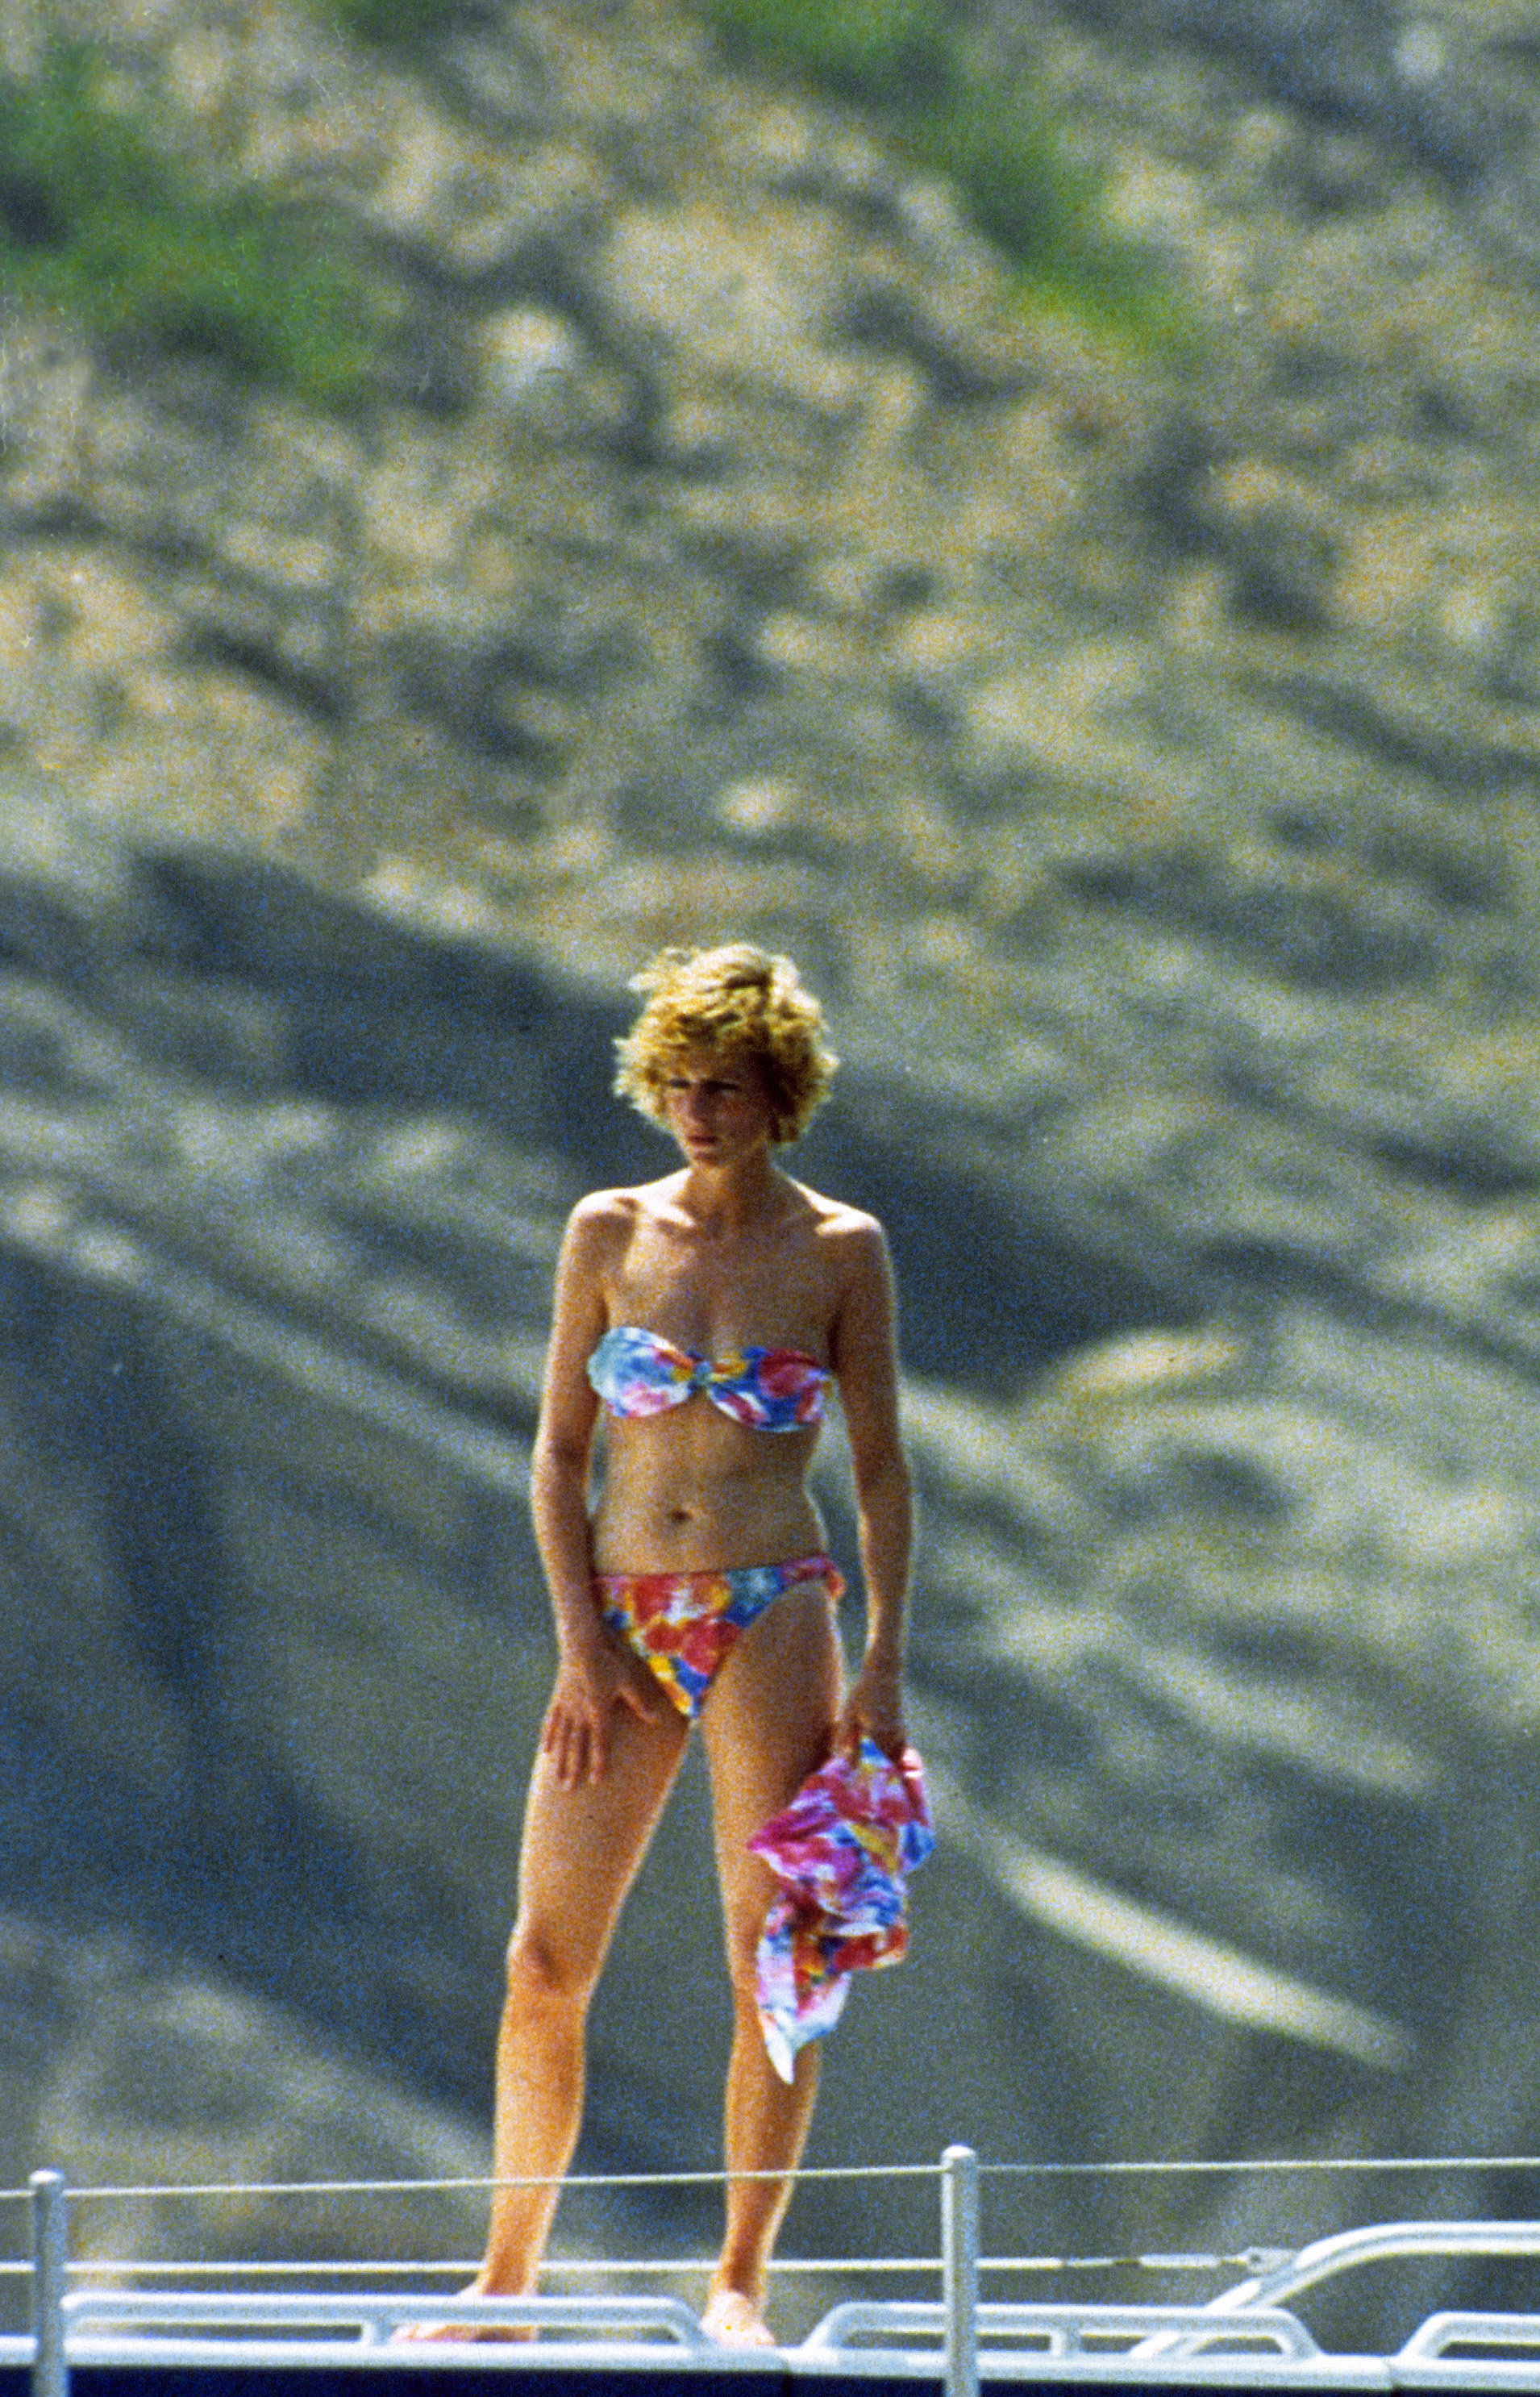 While vacationing in the South of France in 1997, Princess Diana sported a floral bikini; she later died in a car crash on that same trip.